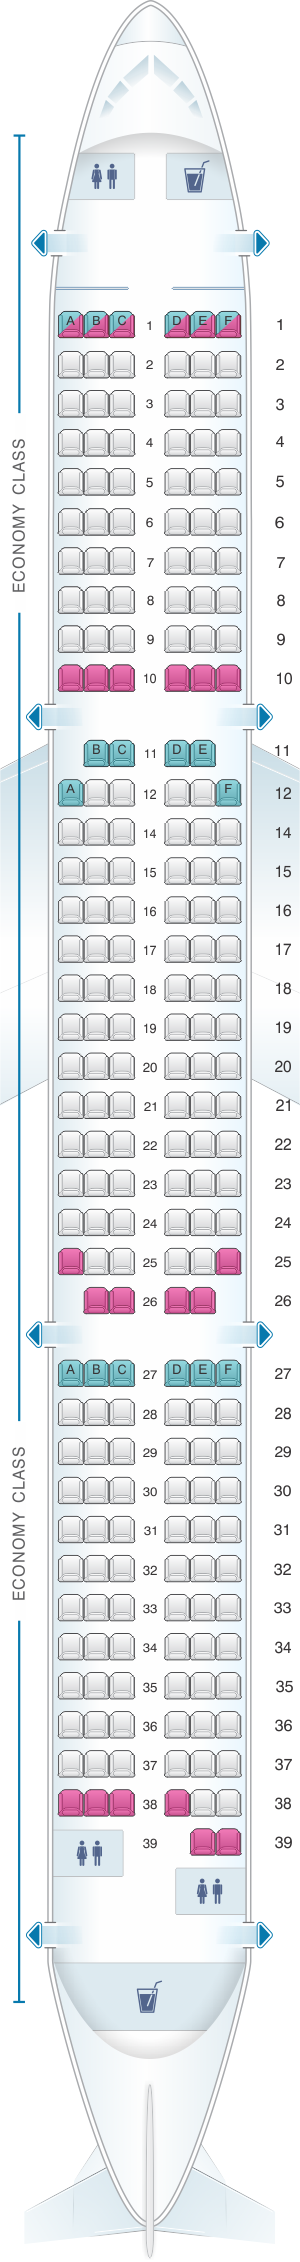 Seat map for Ural Airlines Airbus A321